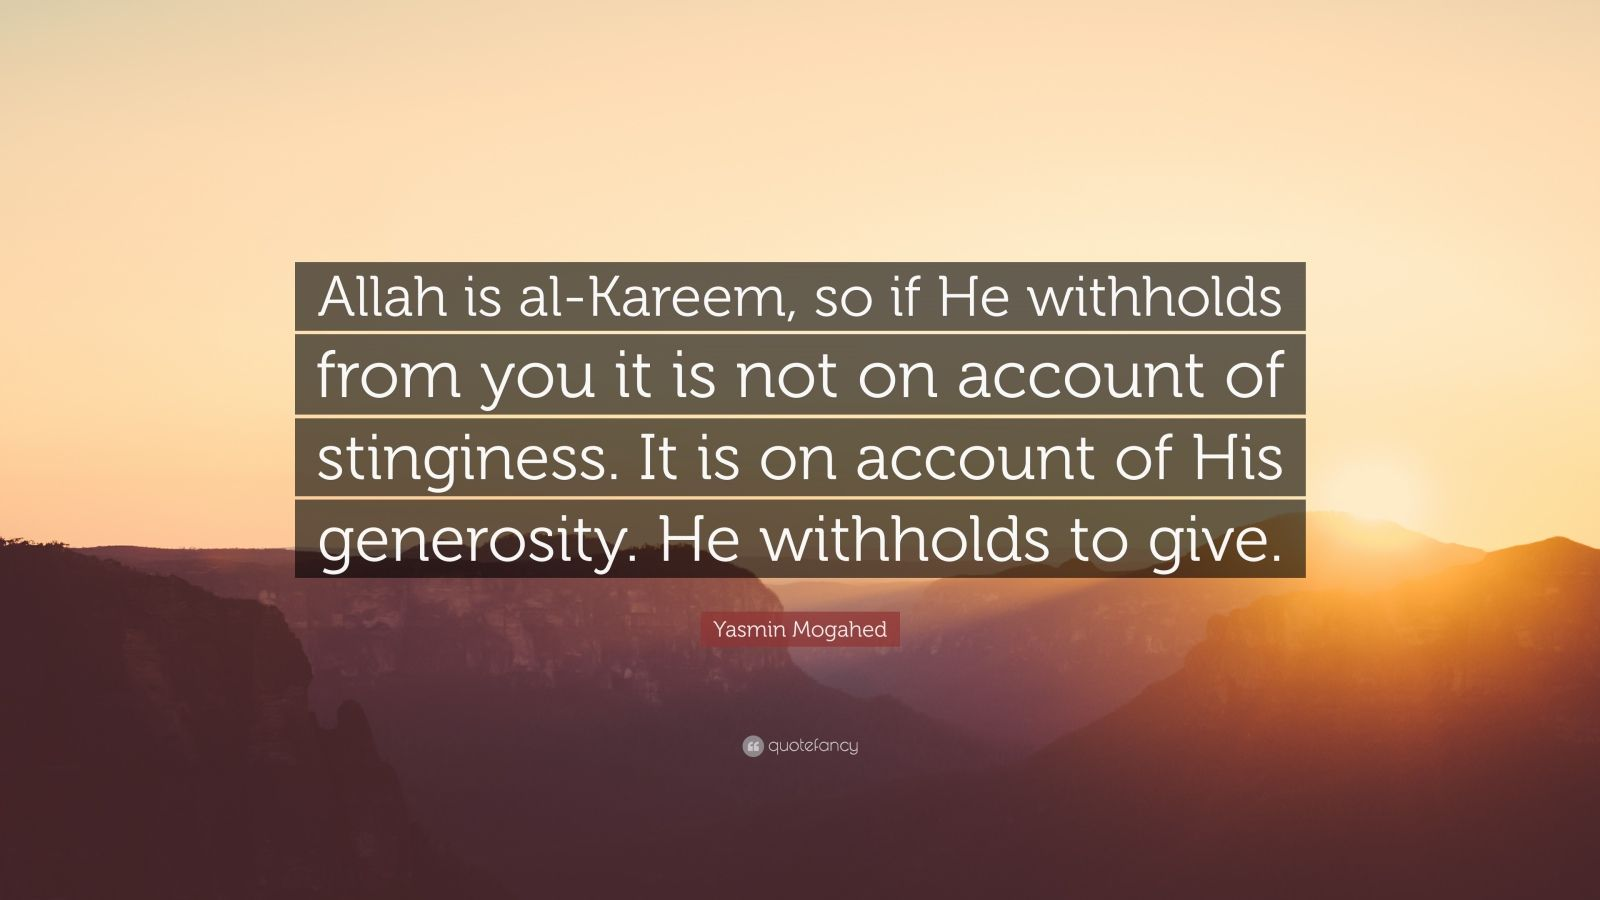 """Yasmin Mogahed Quote: """"Allah is al-Kareem, so if He withholds from you it is not on account of stinginess. It is on account of His generosity. He withholds to give."""""""